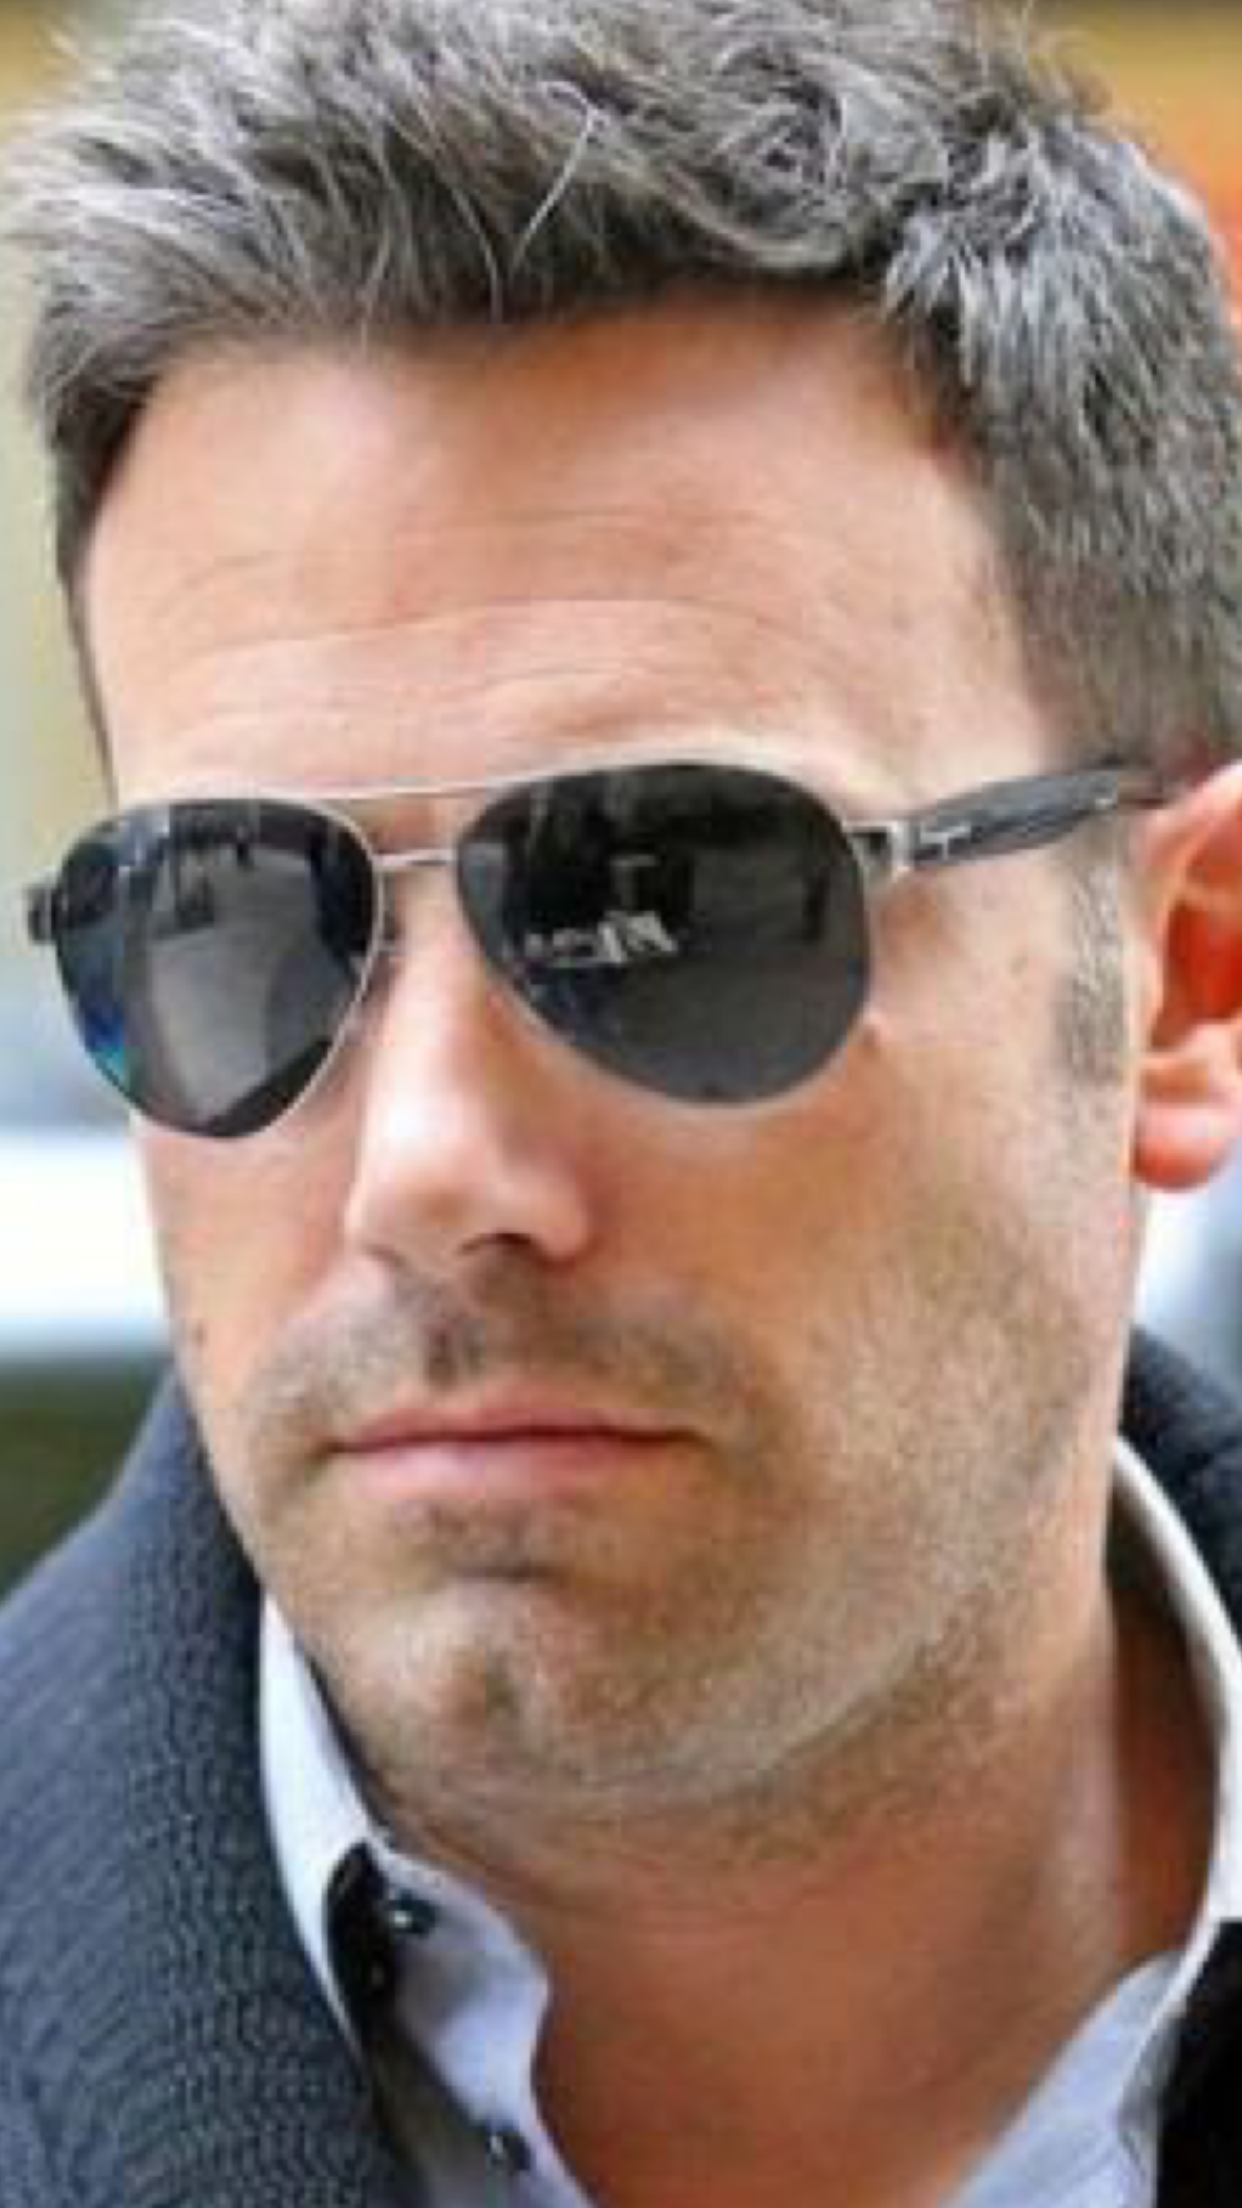 e79d3a28ac G Star Raw Style, Celebrities With Glasses, Celebrity Glasses, Ben Affleck,  Stylish